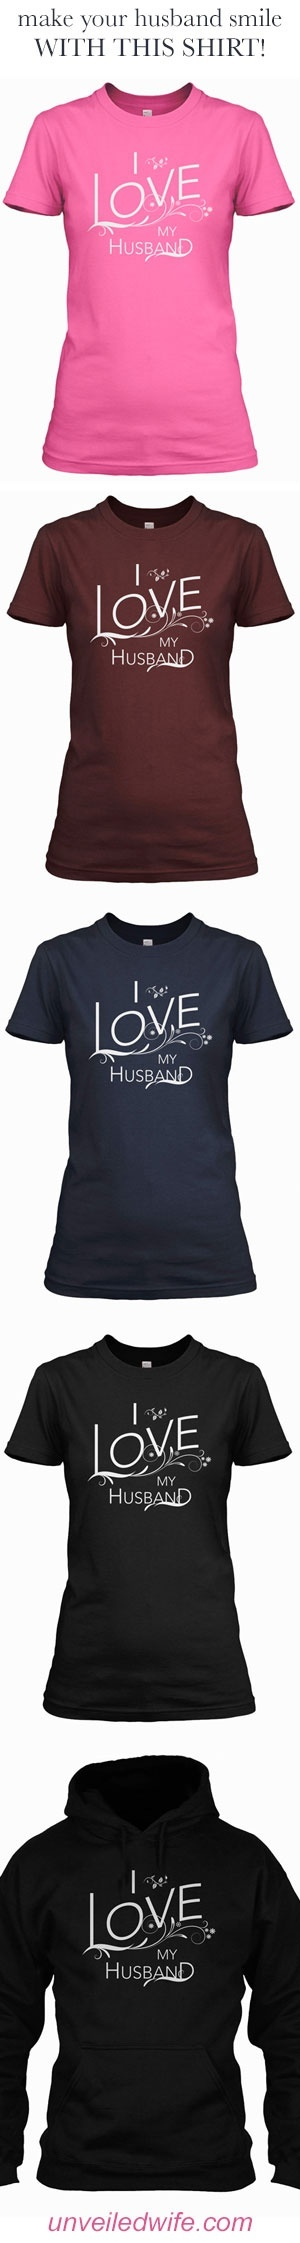 I just entered to WIN this shirt! <3Enter to win here http://unveiledwife.com/official-i-love-my-husband-t-shirt/